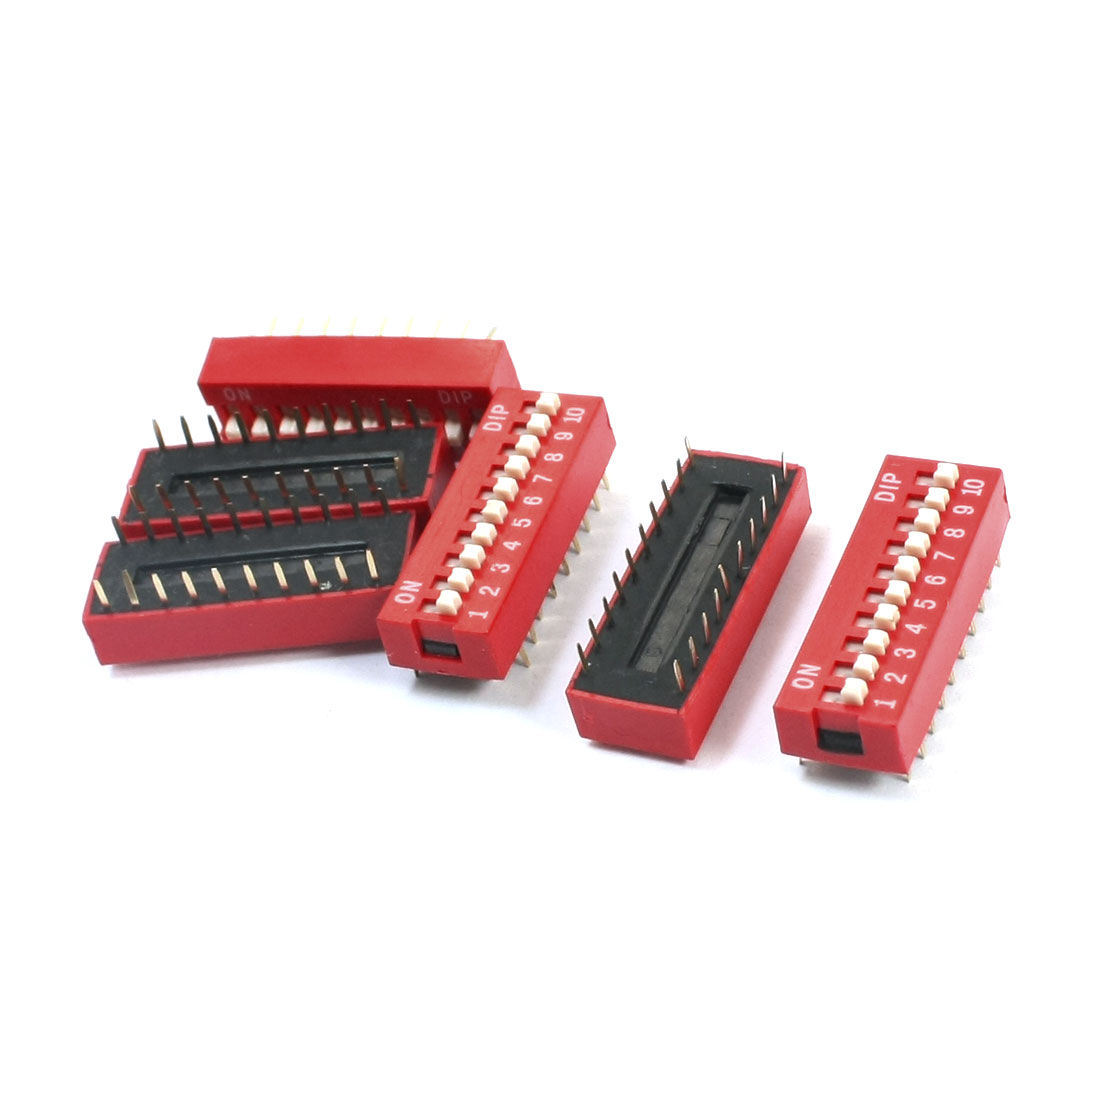 6Pcs Red Slide Type 2 Row 20 Pin Terminals 10 Positions 2.54mm Pitch DIP Key Switch